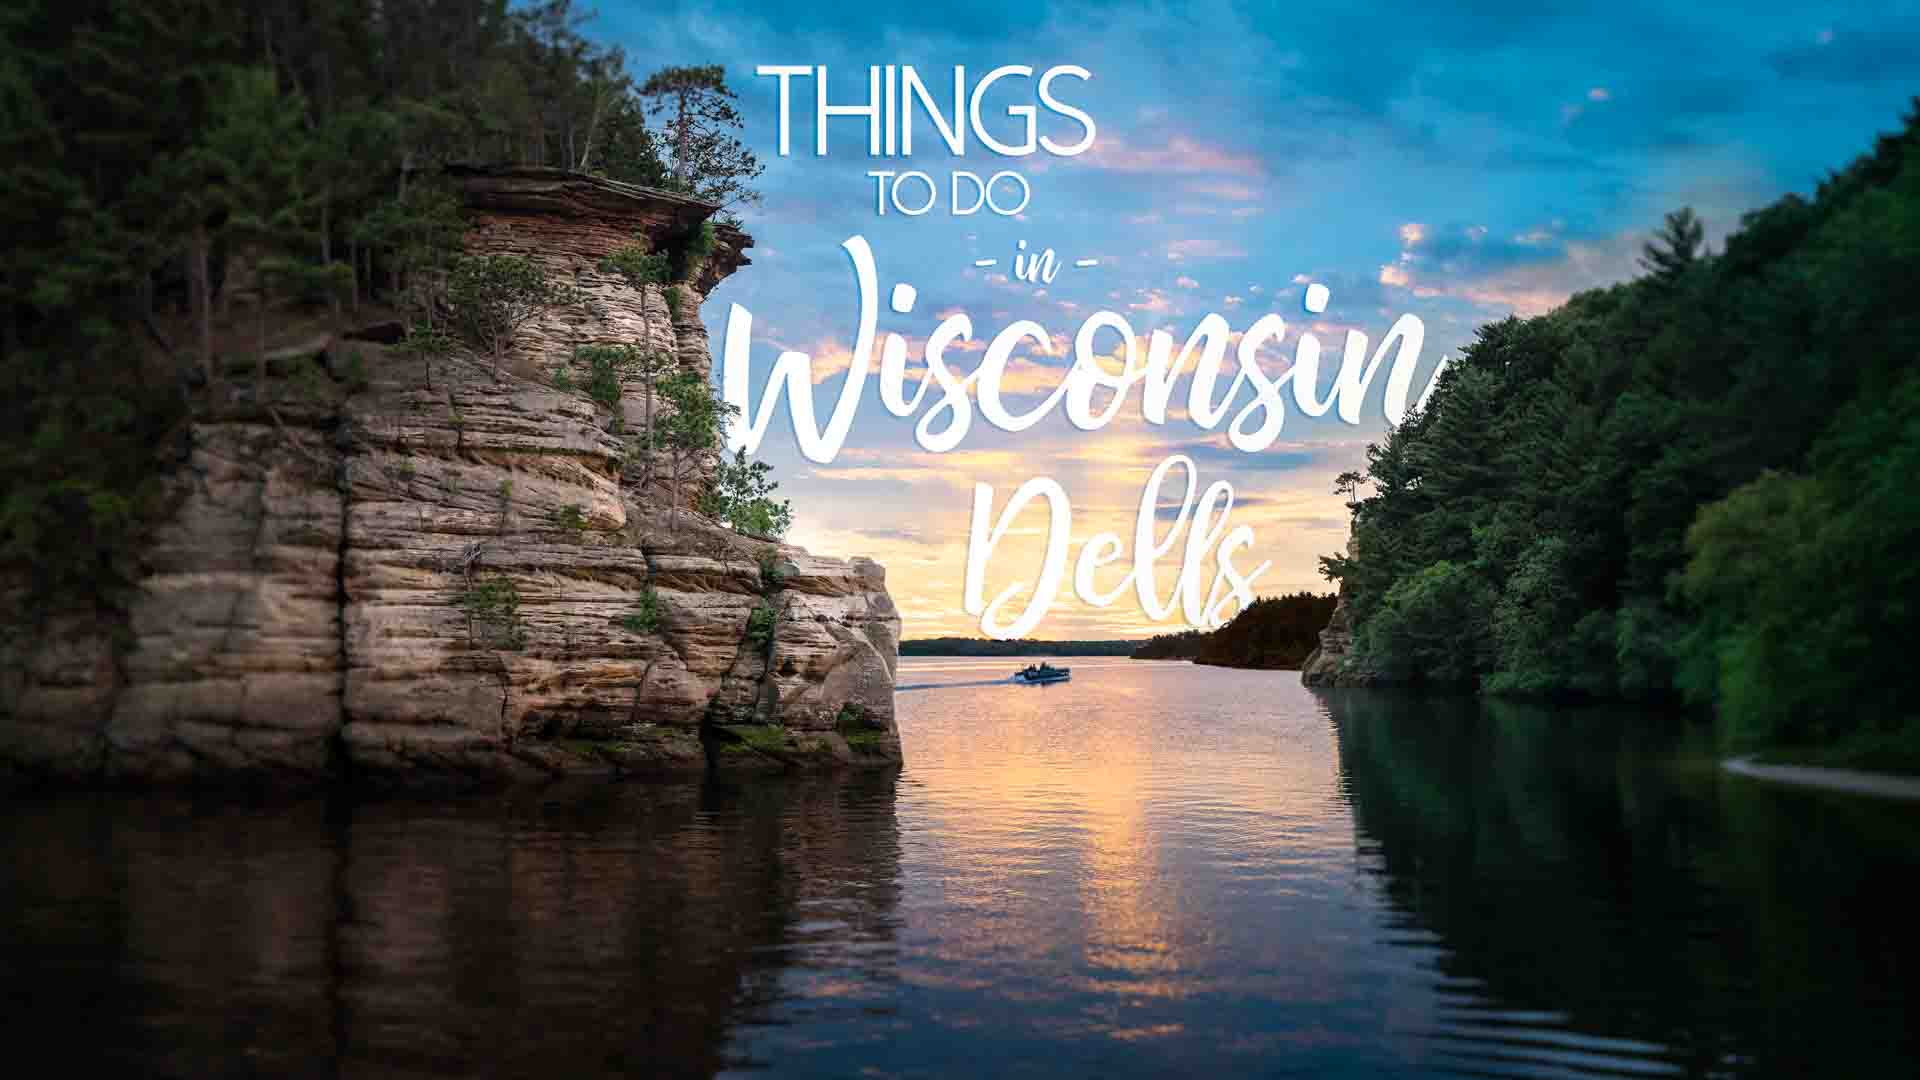 sunset with Dells rock formations - Featured Image for things to do in Wisconsin Dells